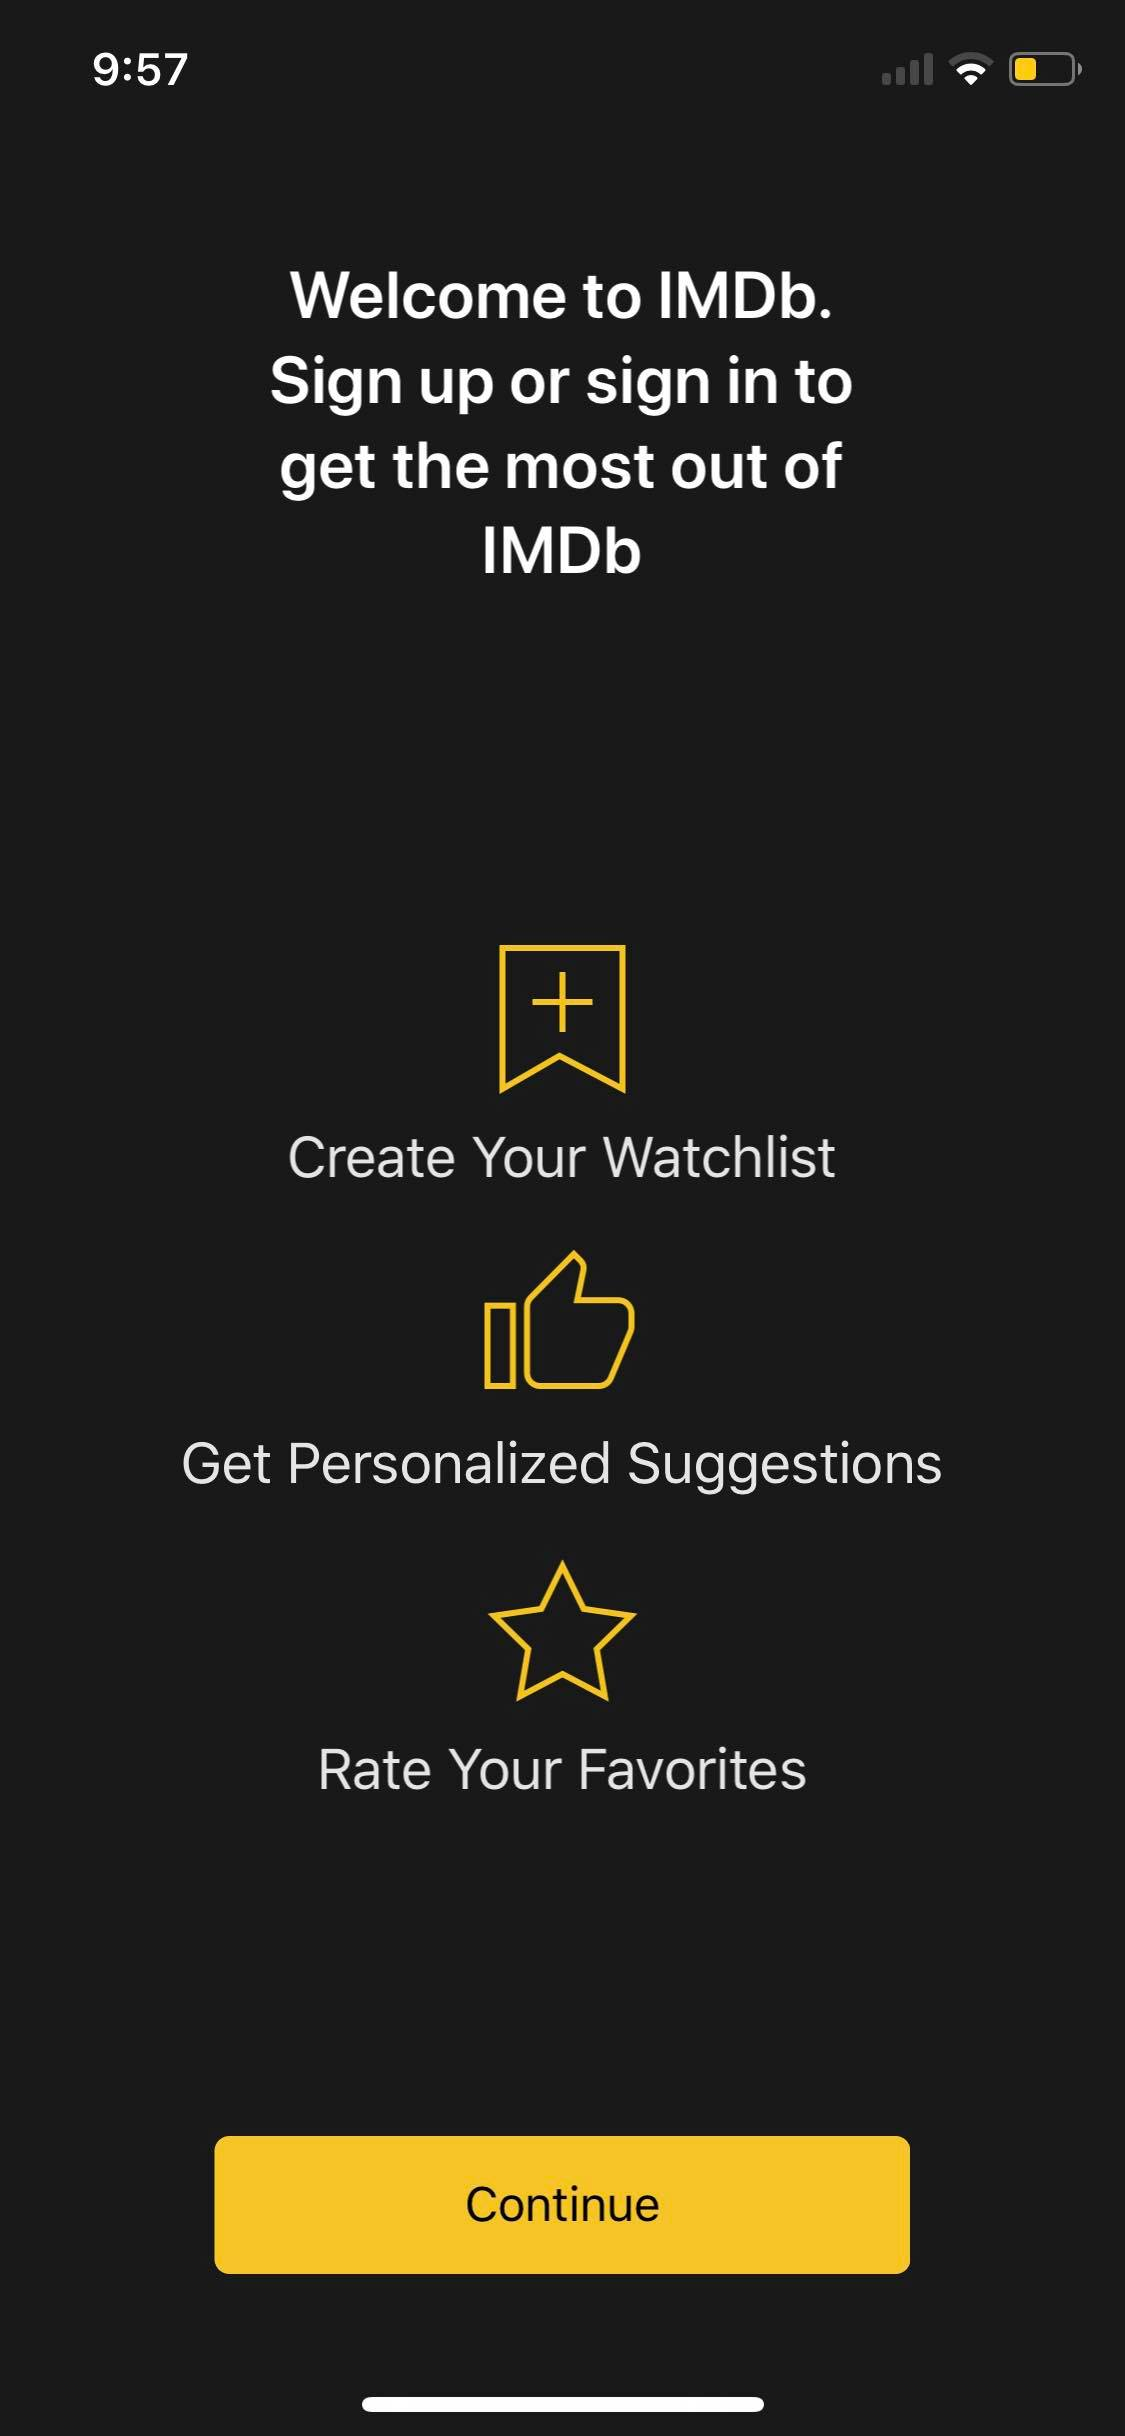 Welcome on iOS by IMDb from UIGarage